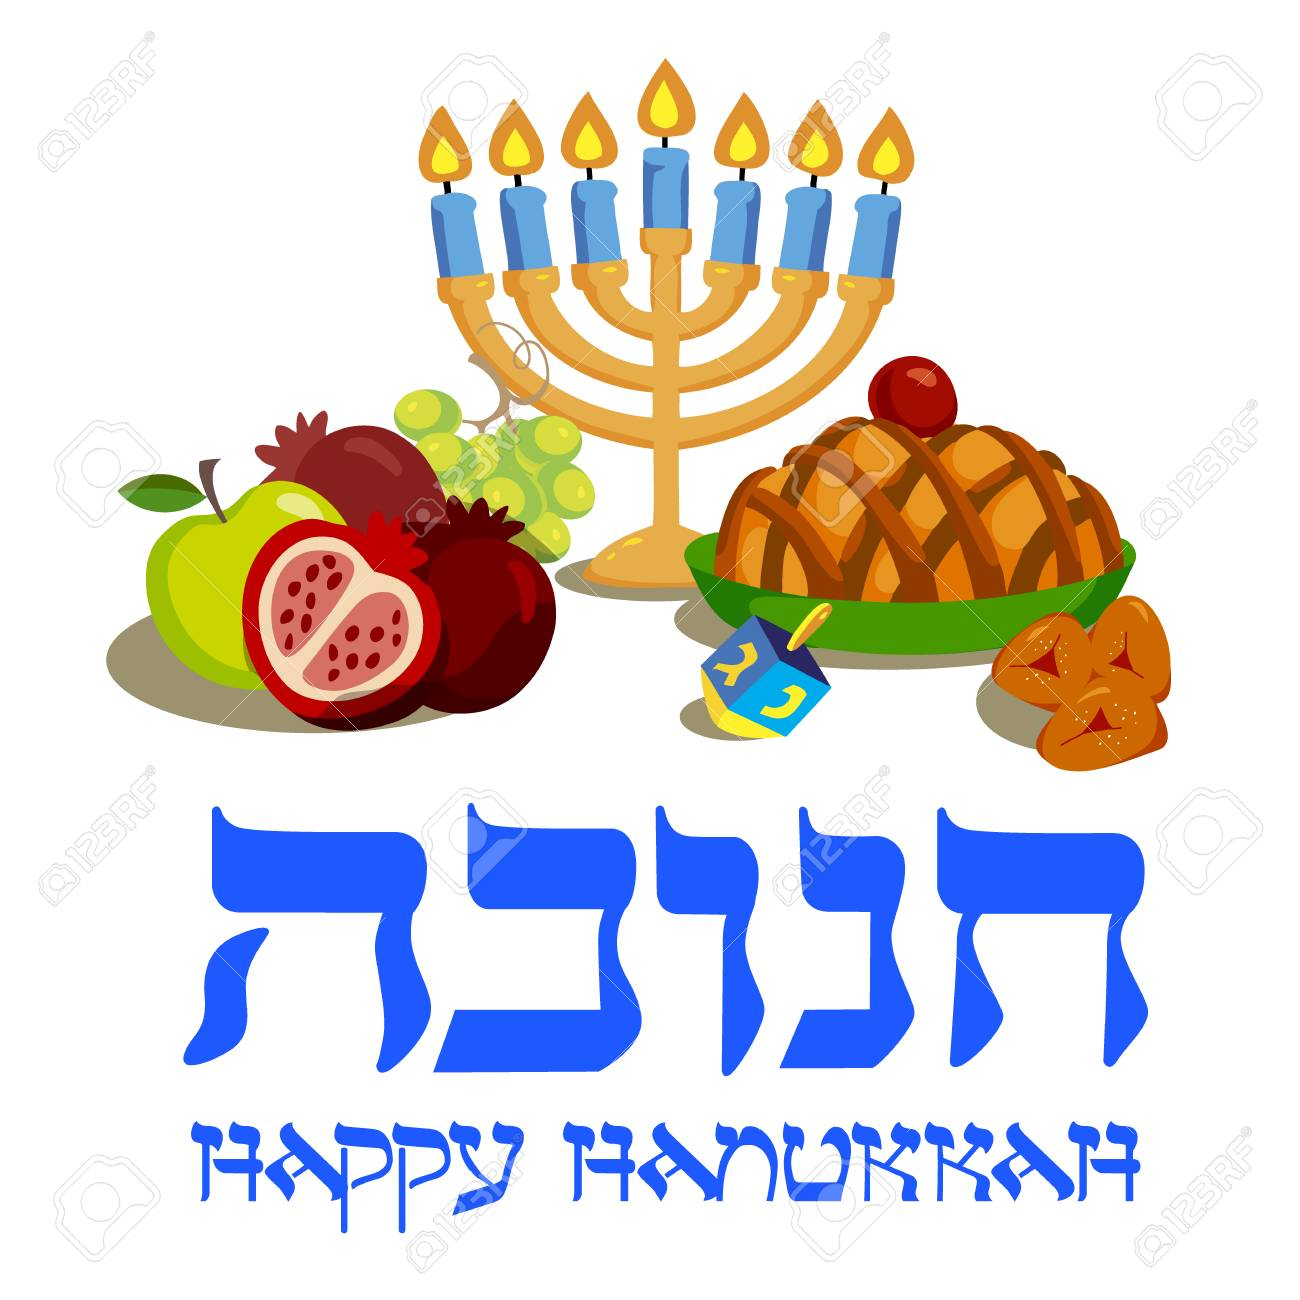 Jewish Holiday Hanukkah Elegant Greeting Card In The Cartoon